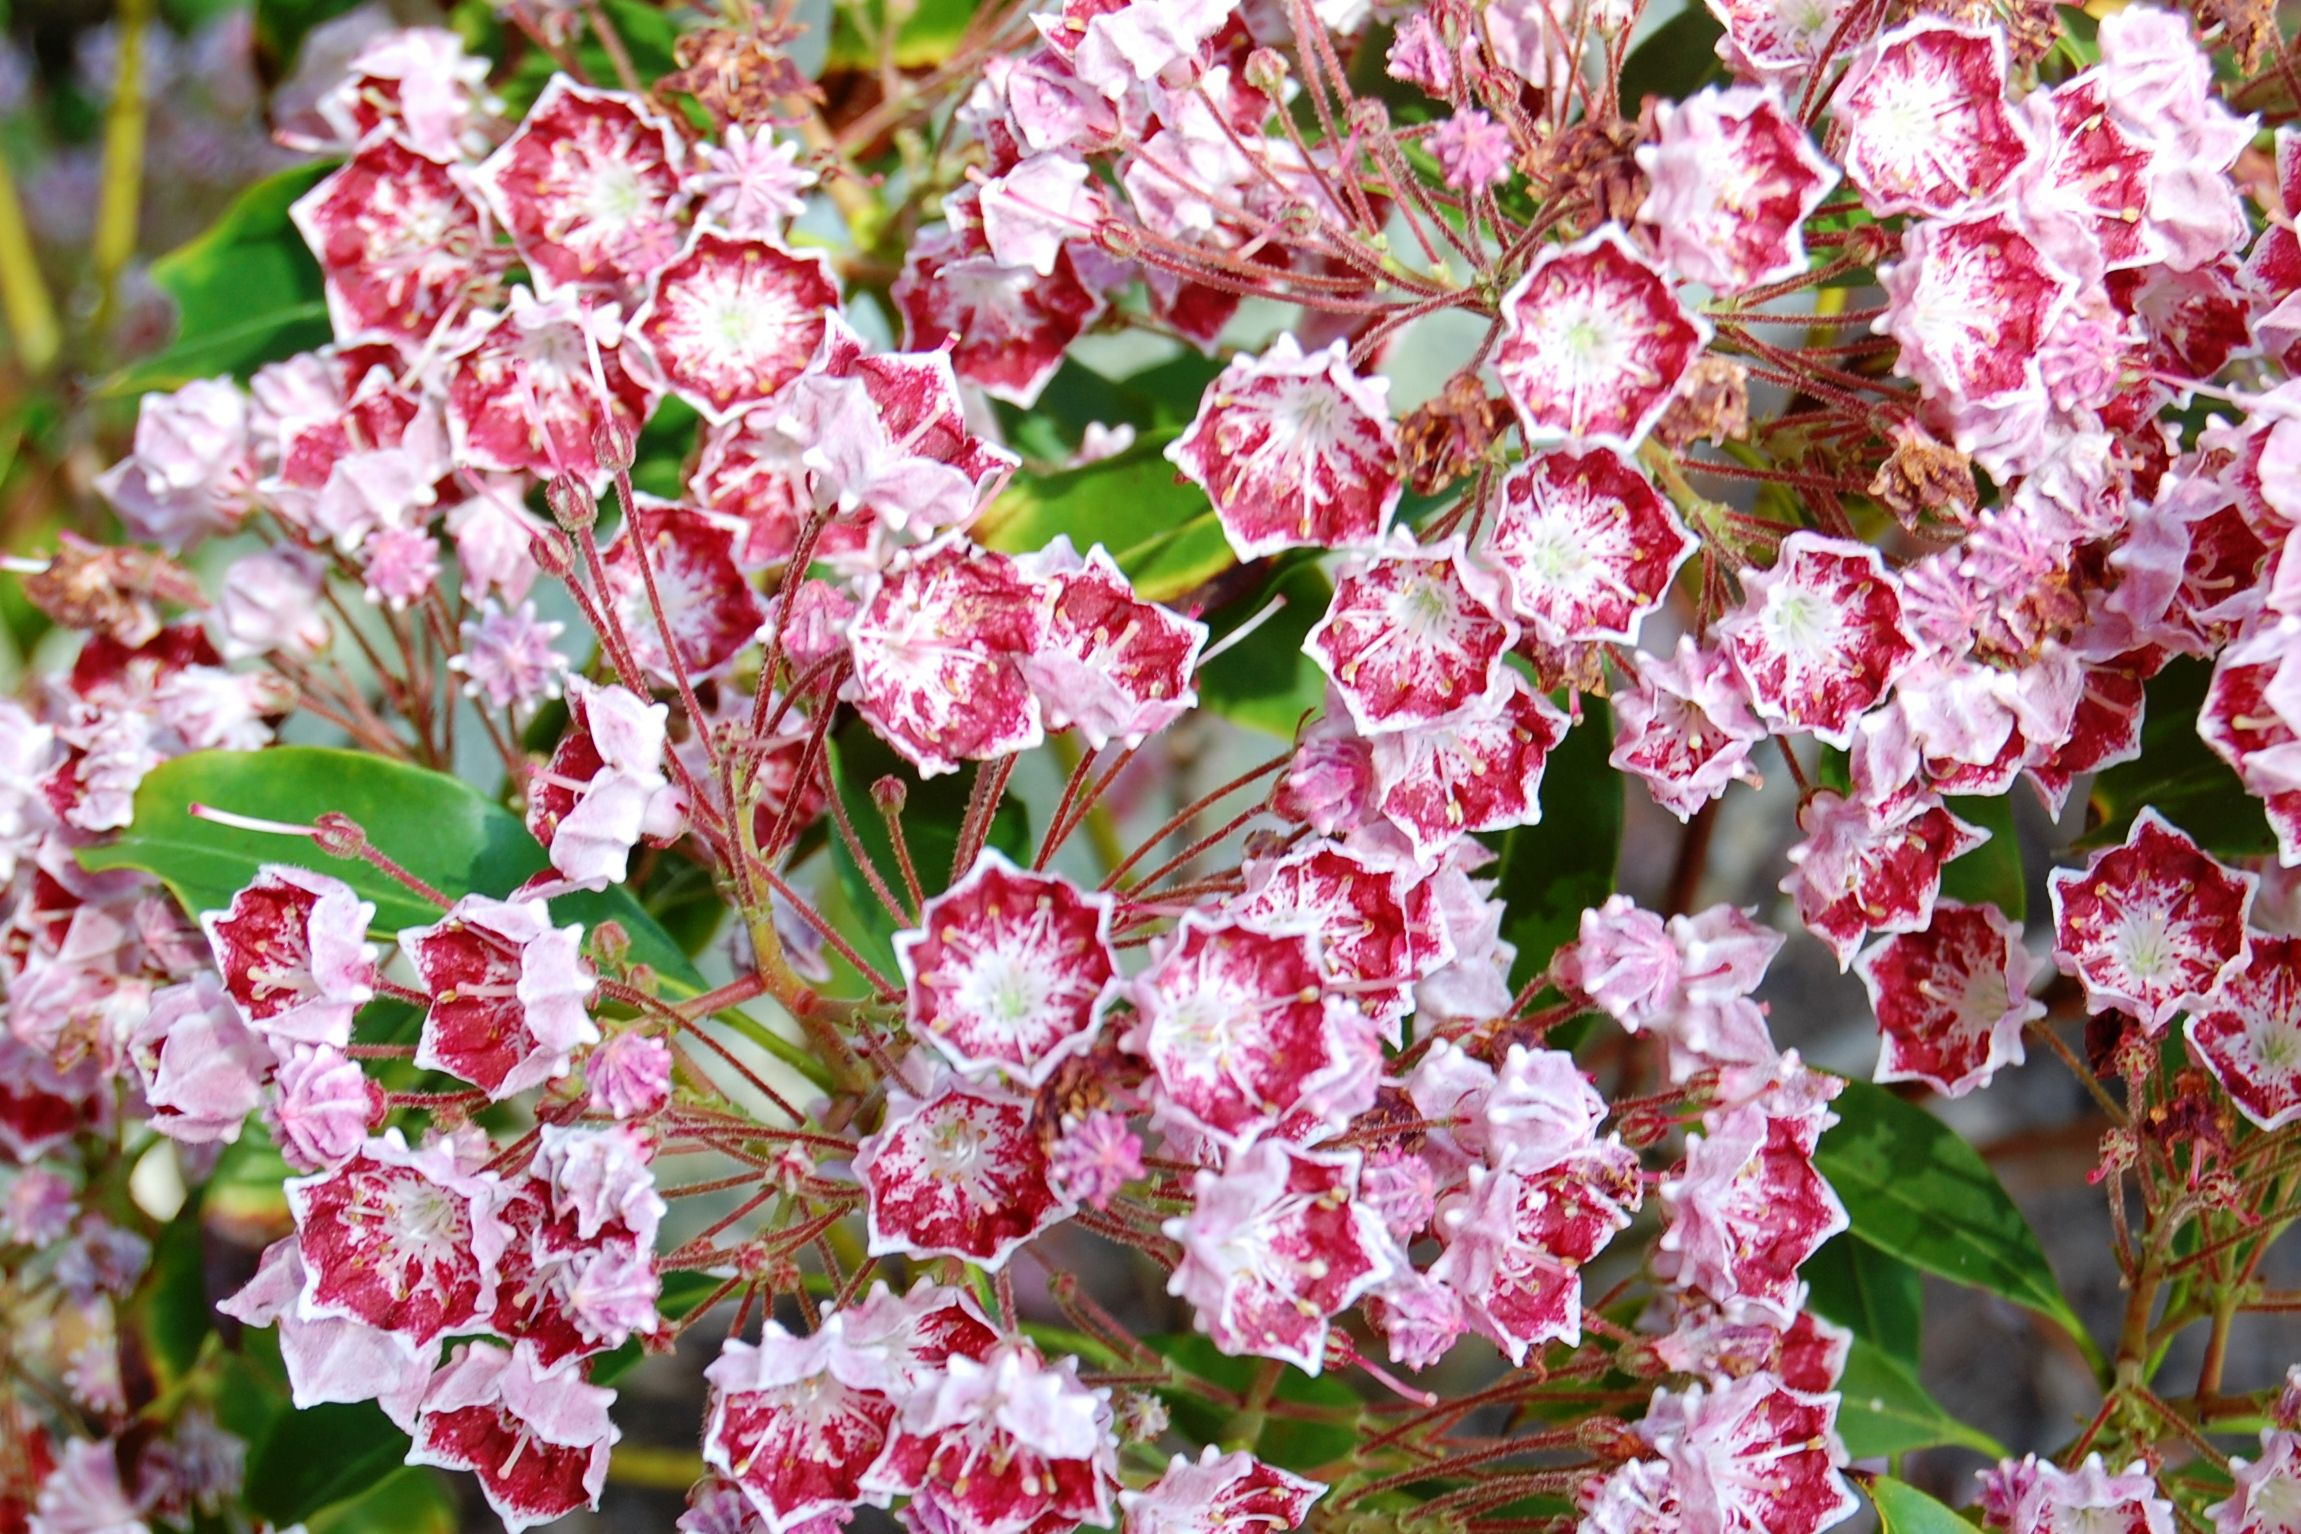 Pictures of flowering shrubs for landscaping ideas dhlflorist Choice Image